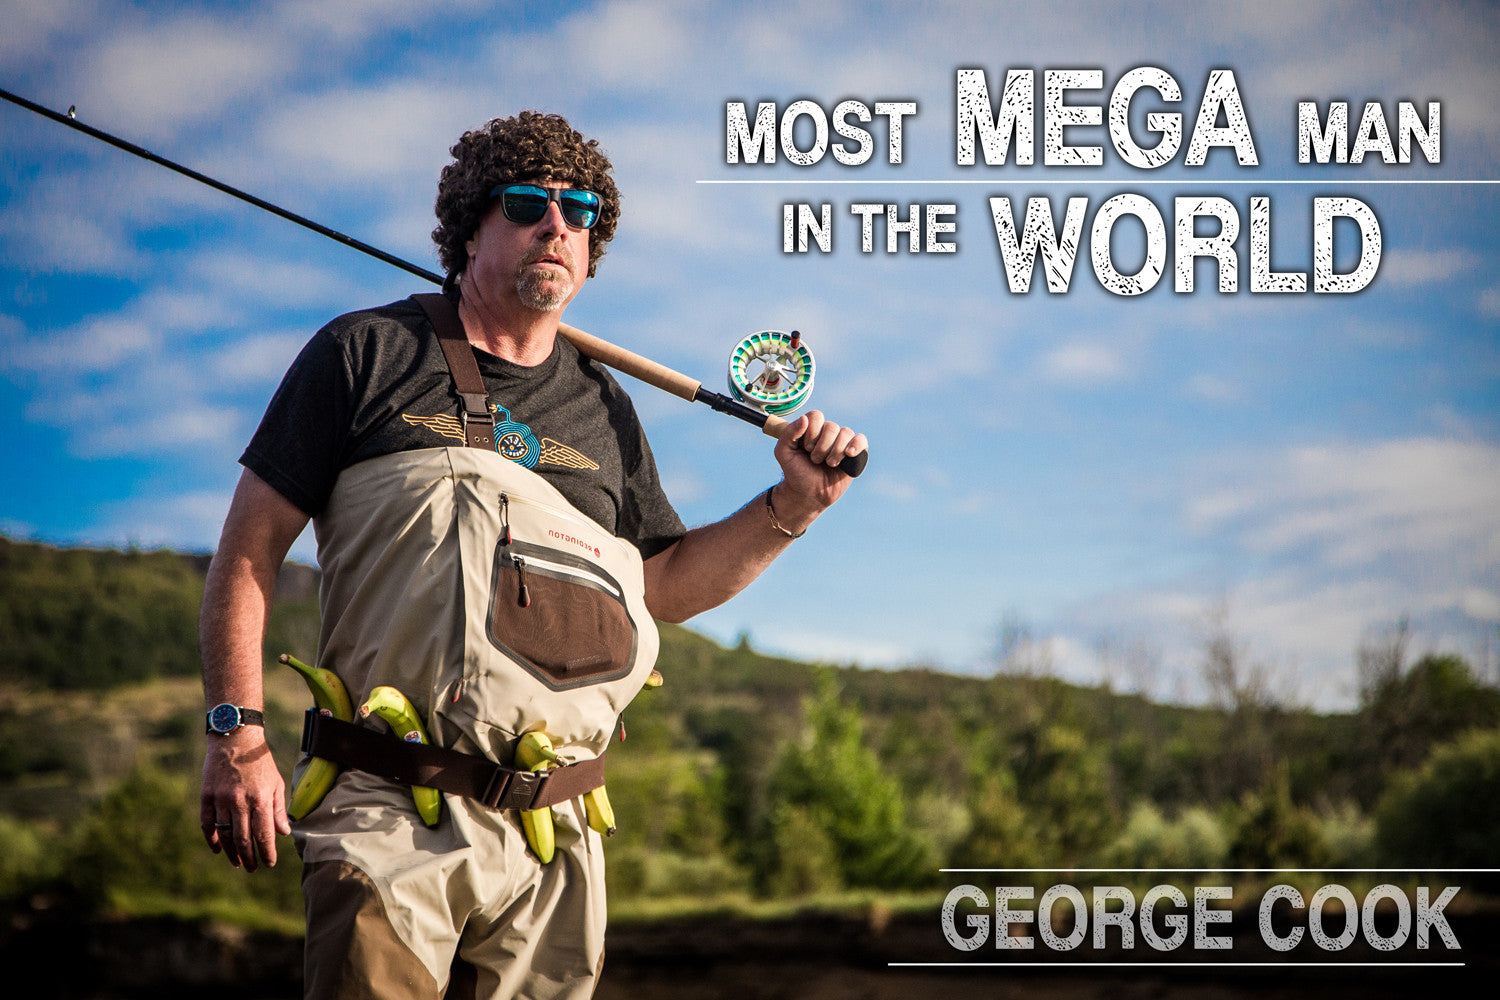 George Cook - Most Mega Man in the World